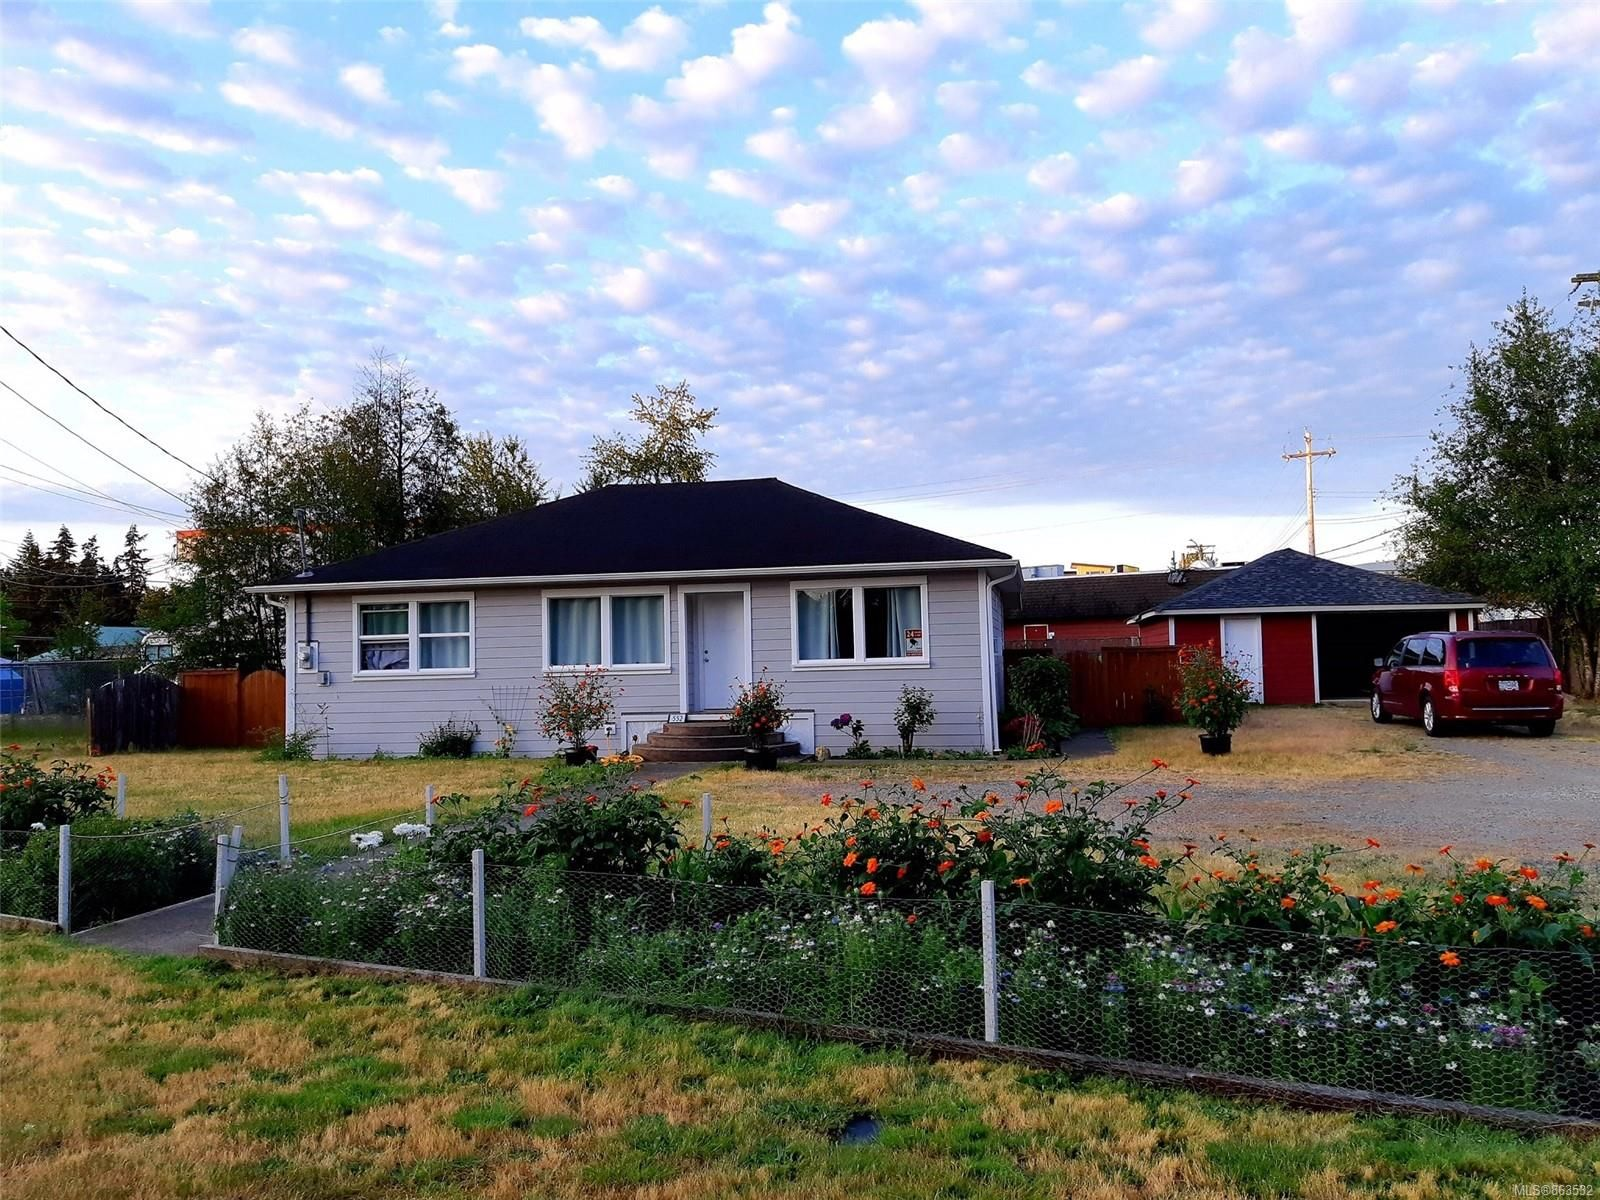 Main Photo: 552 Pioneer Cres in : PQ Parksville House for sale (Parksville/Qualicum)  : MLS®# 863532